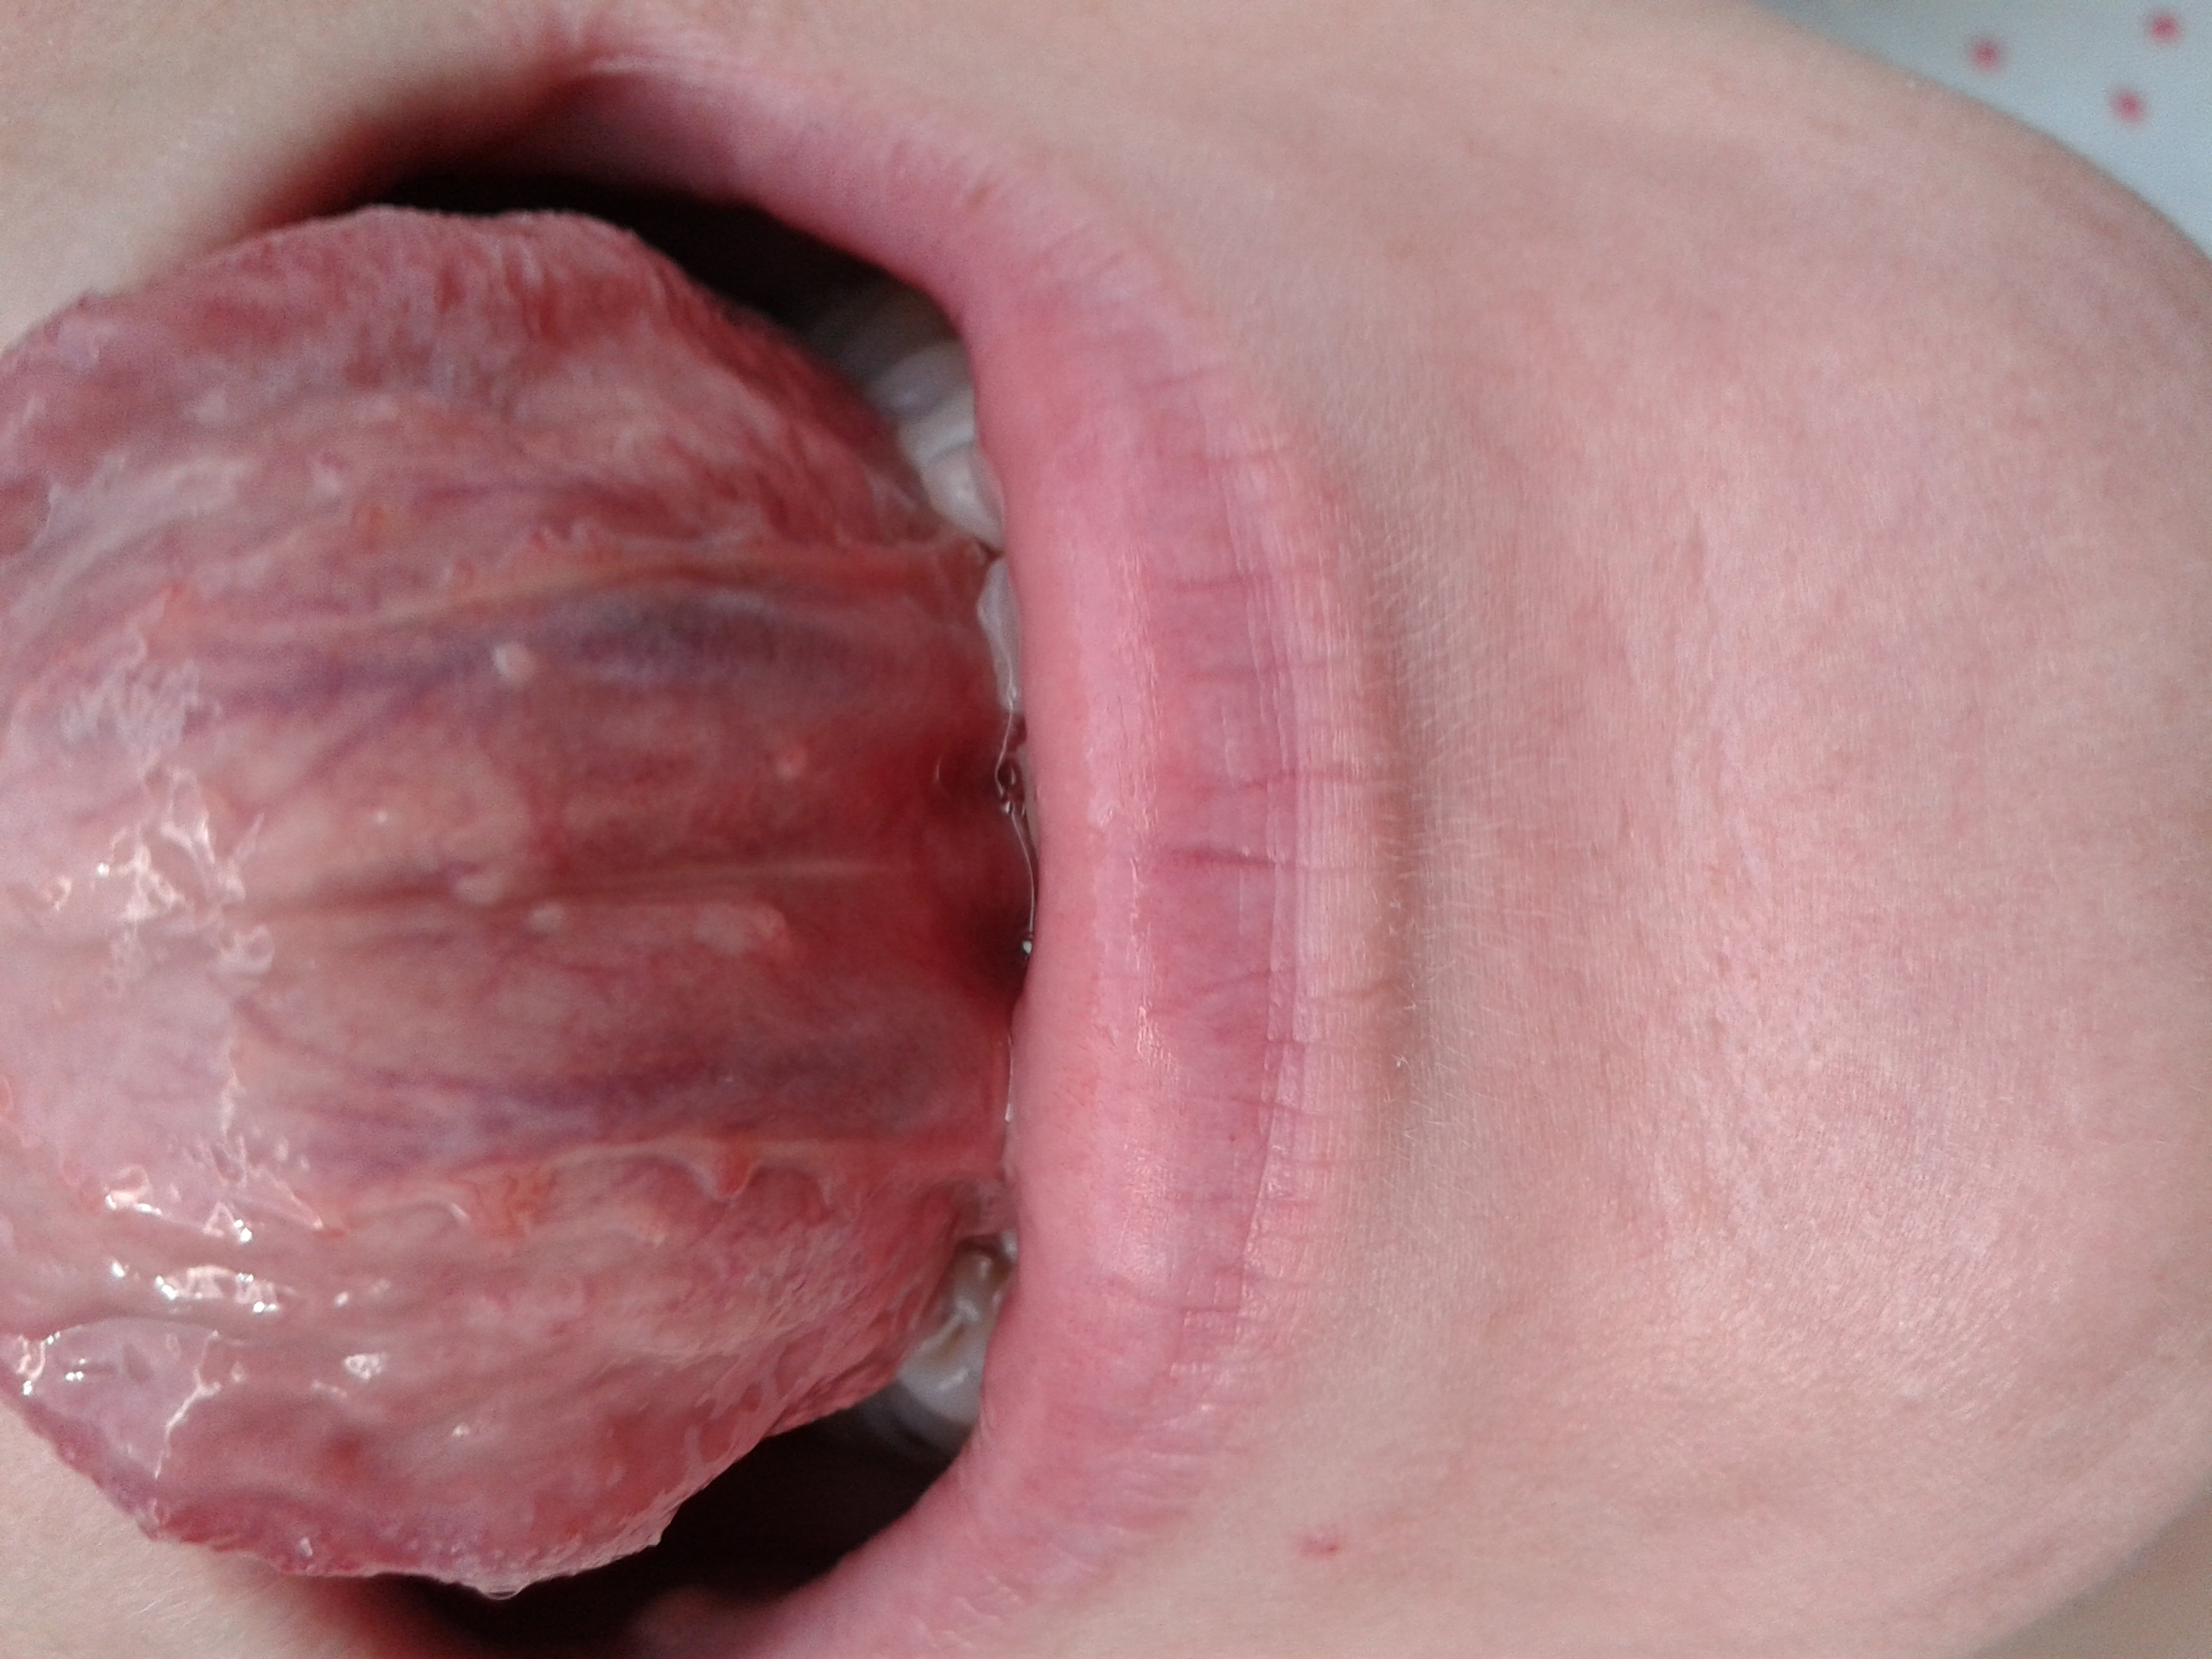 I Have Recently Noticed Some Bumps On The Underside Of My Tongue